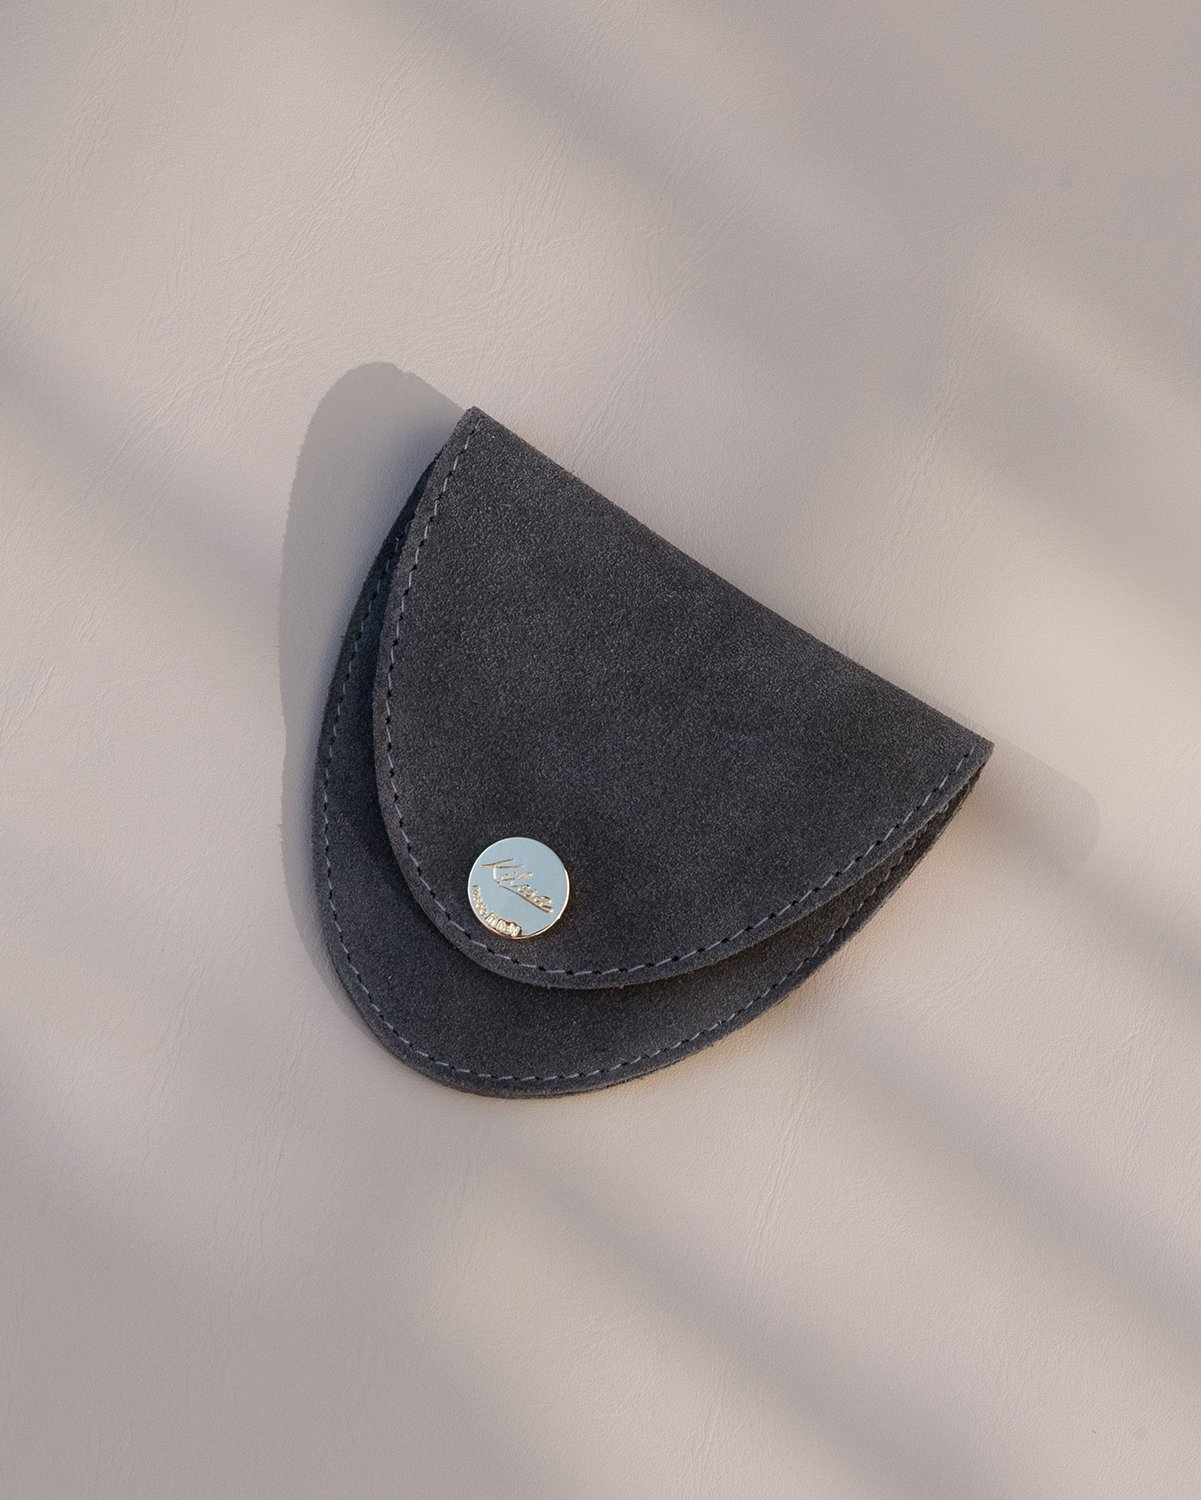 Kilesa grey suede coin purse